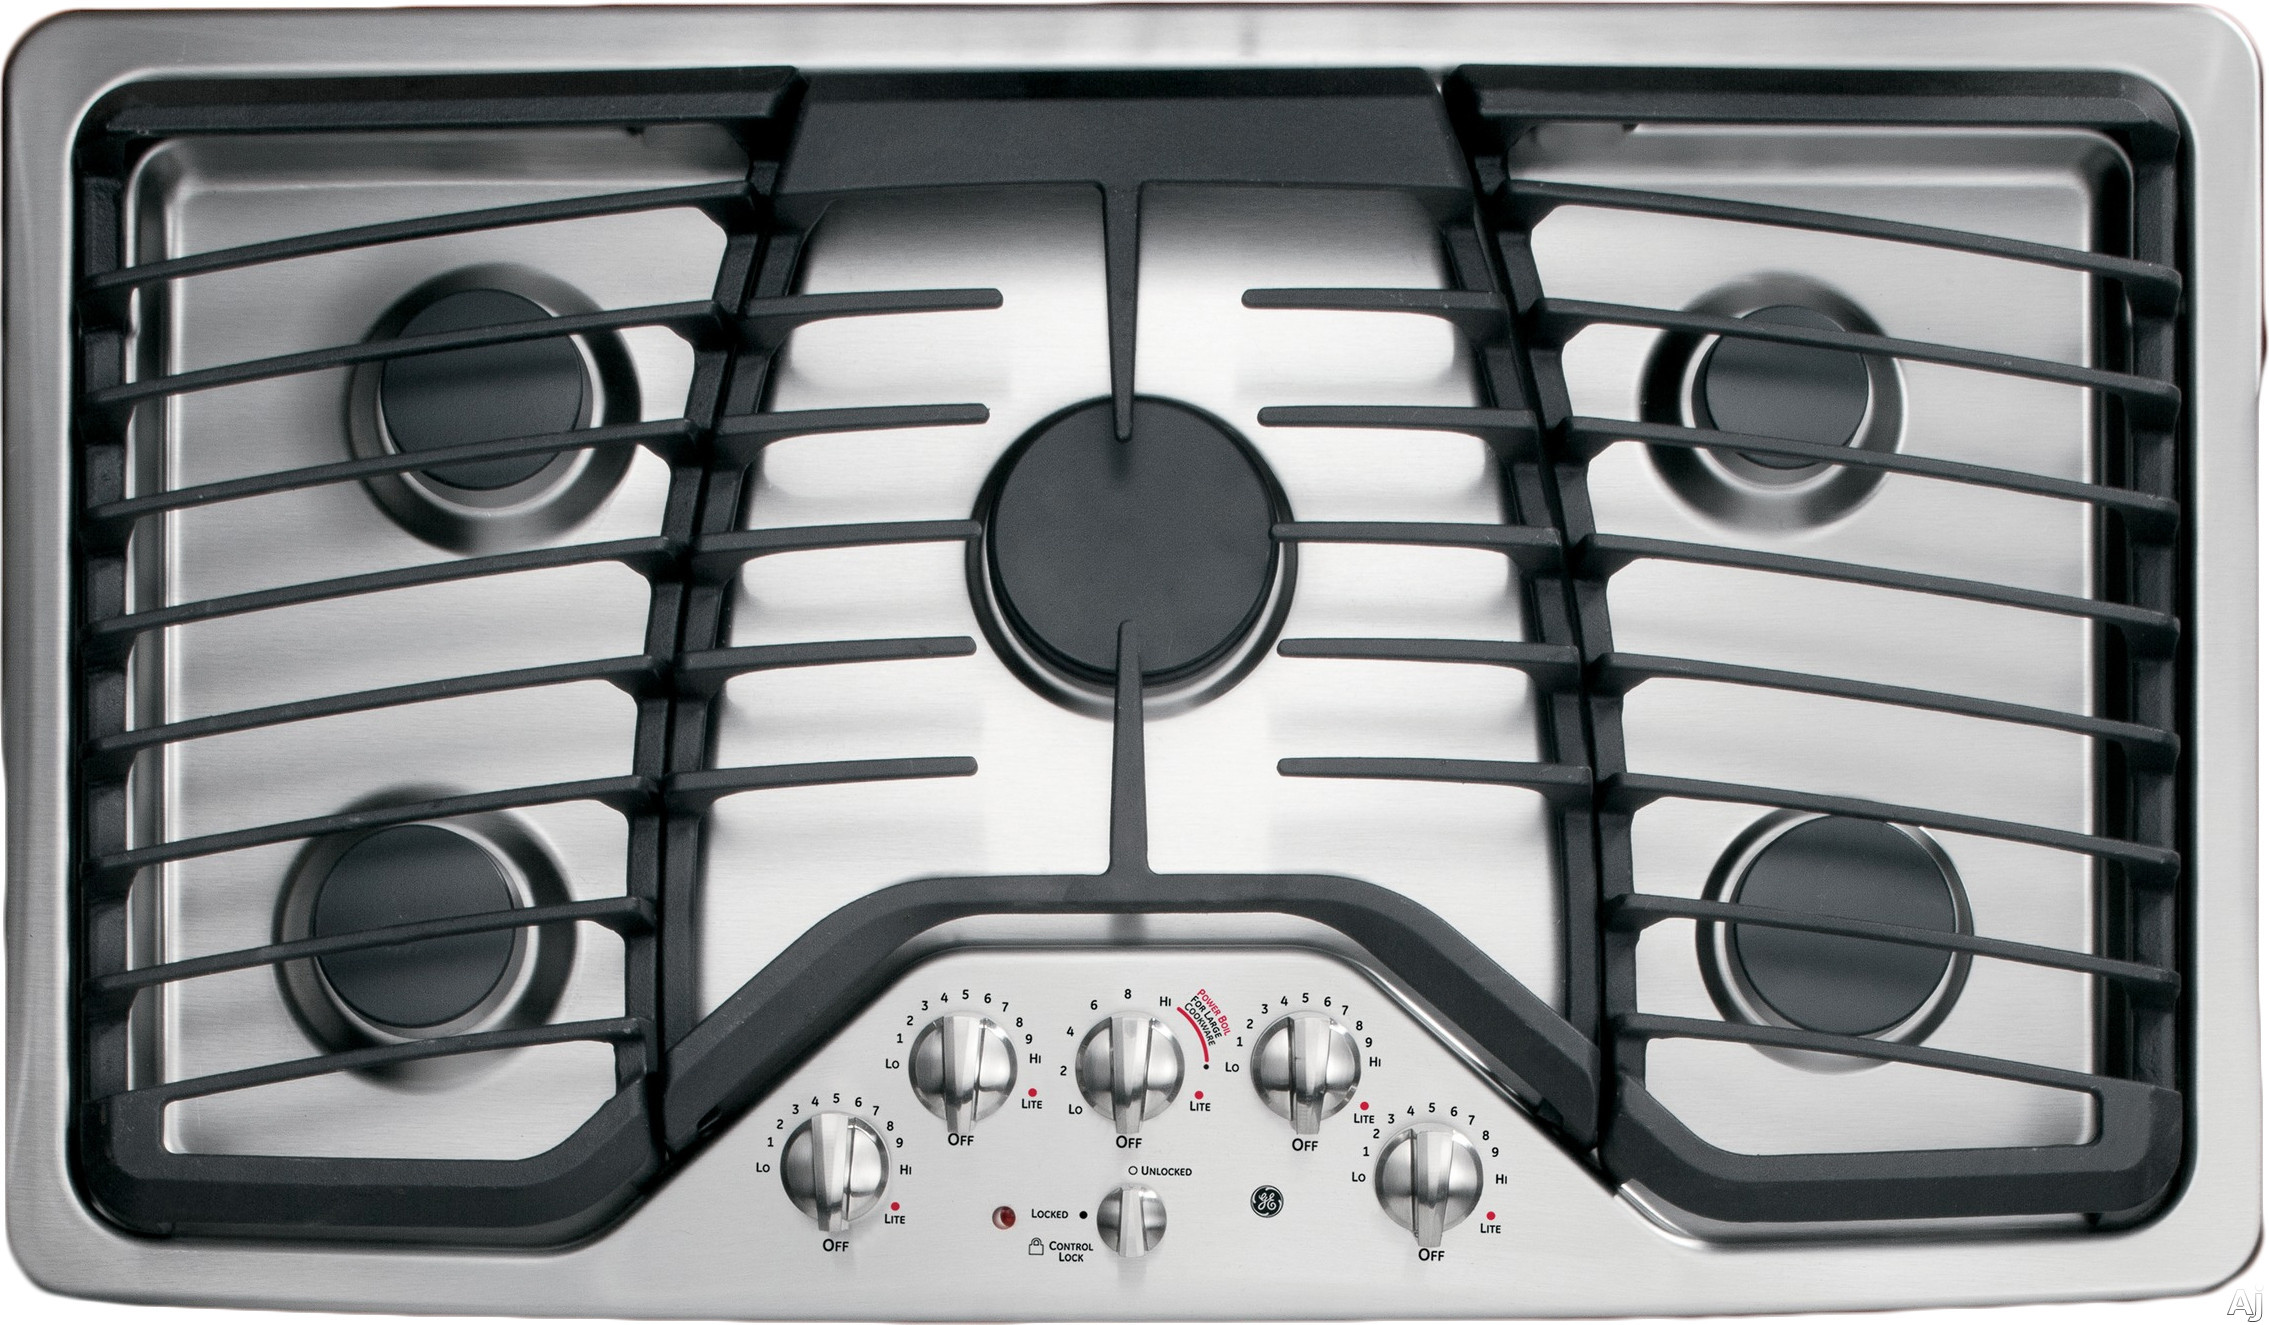 """GE Profile PGP976SETSS 36"""" Gas Cooktop with 5 Sealed Burners, 17,000 BTU PowerBoil, Precise Simmer Burner, Heavy Cast Grates, Child Lock and LED Backlit Knobs: Stainless Steel"""